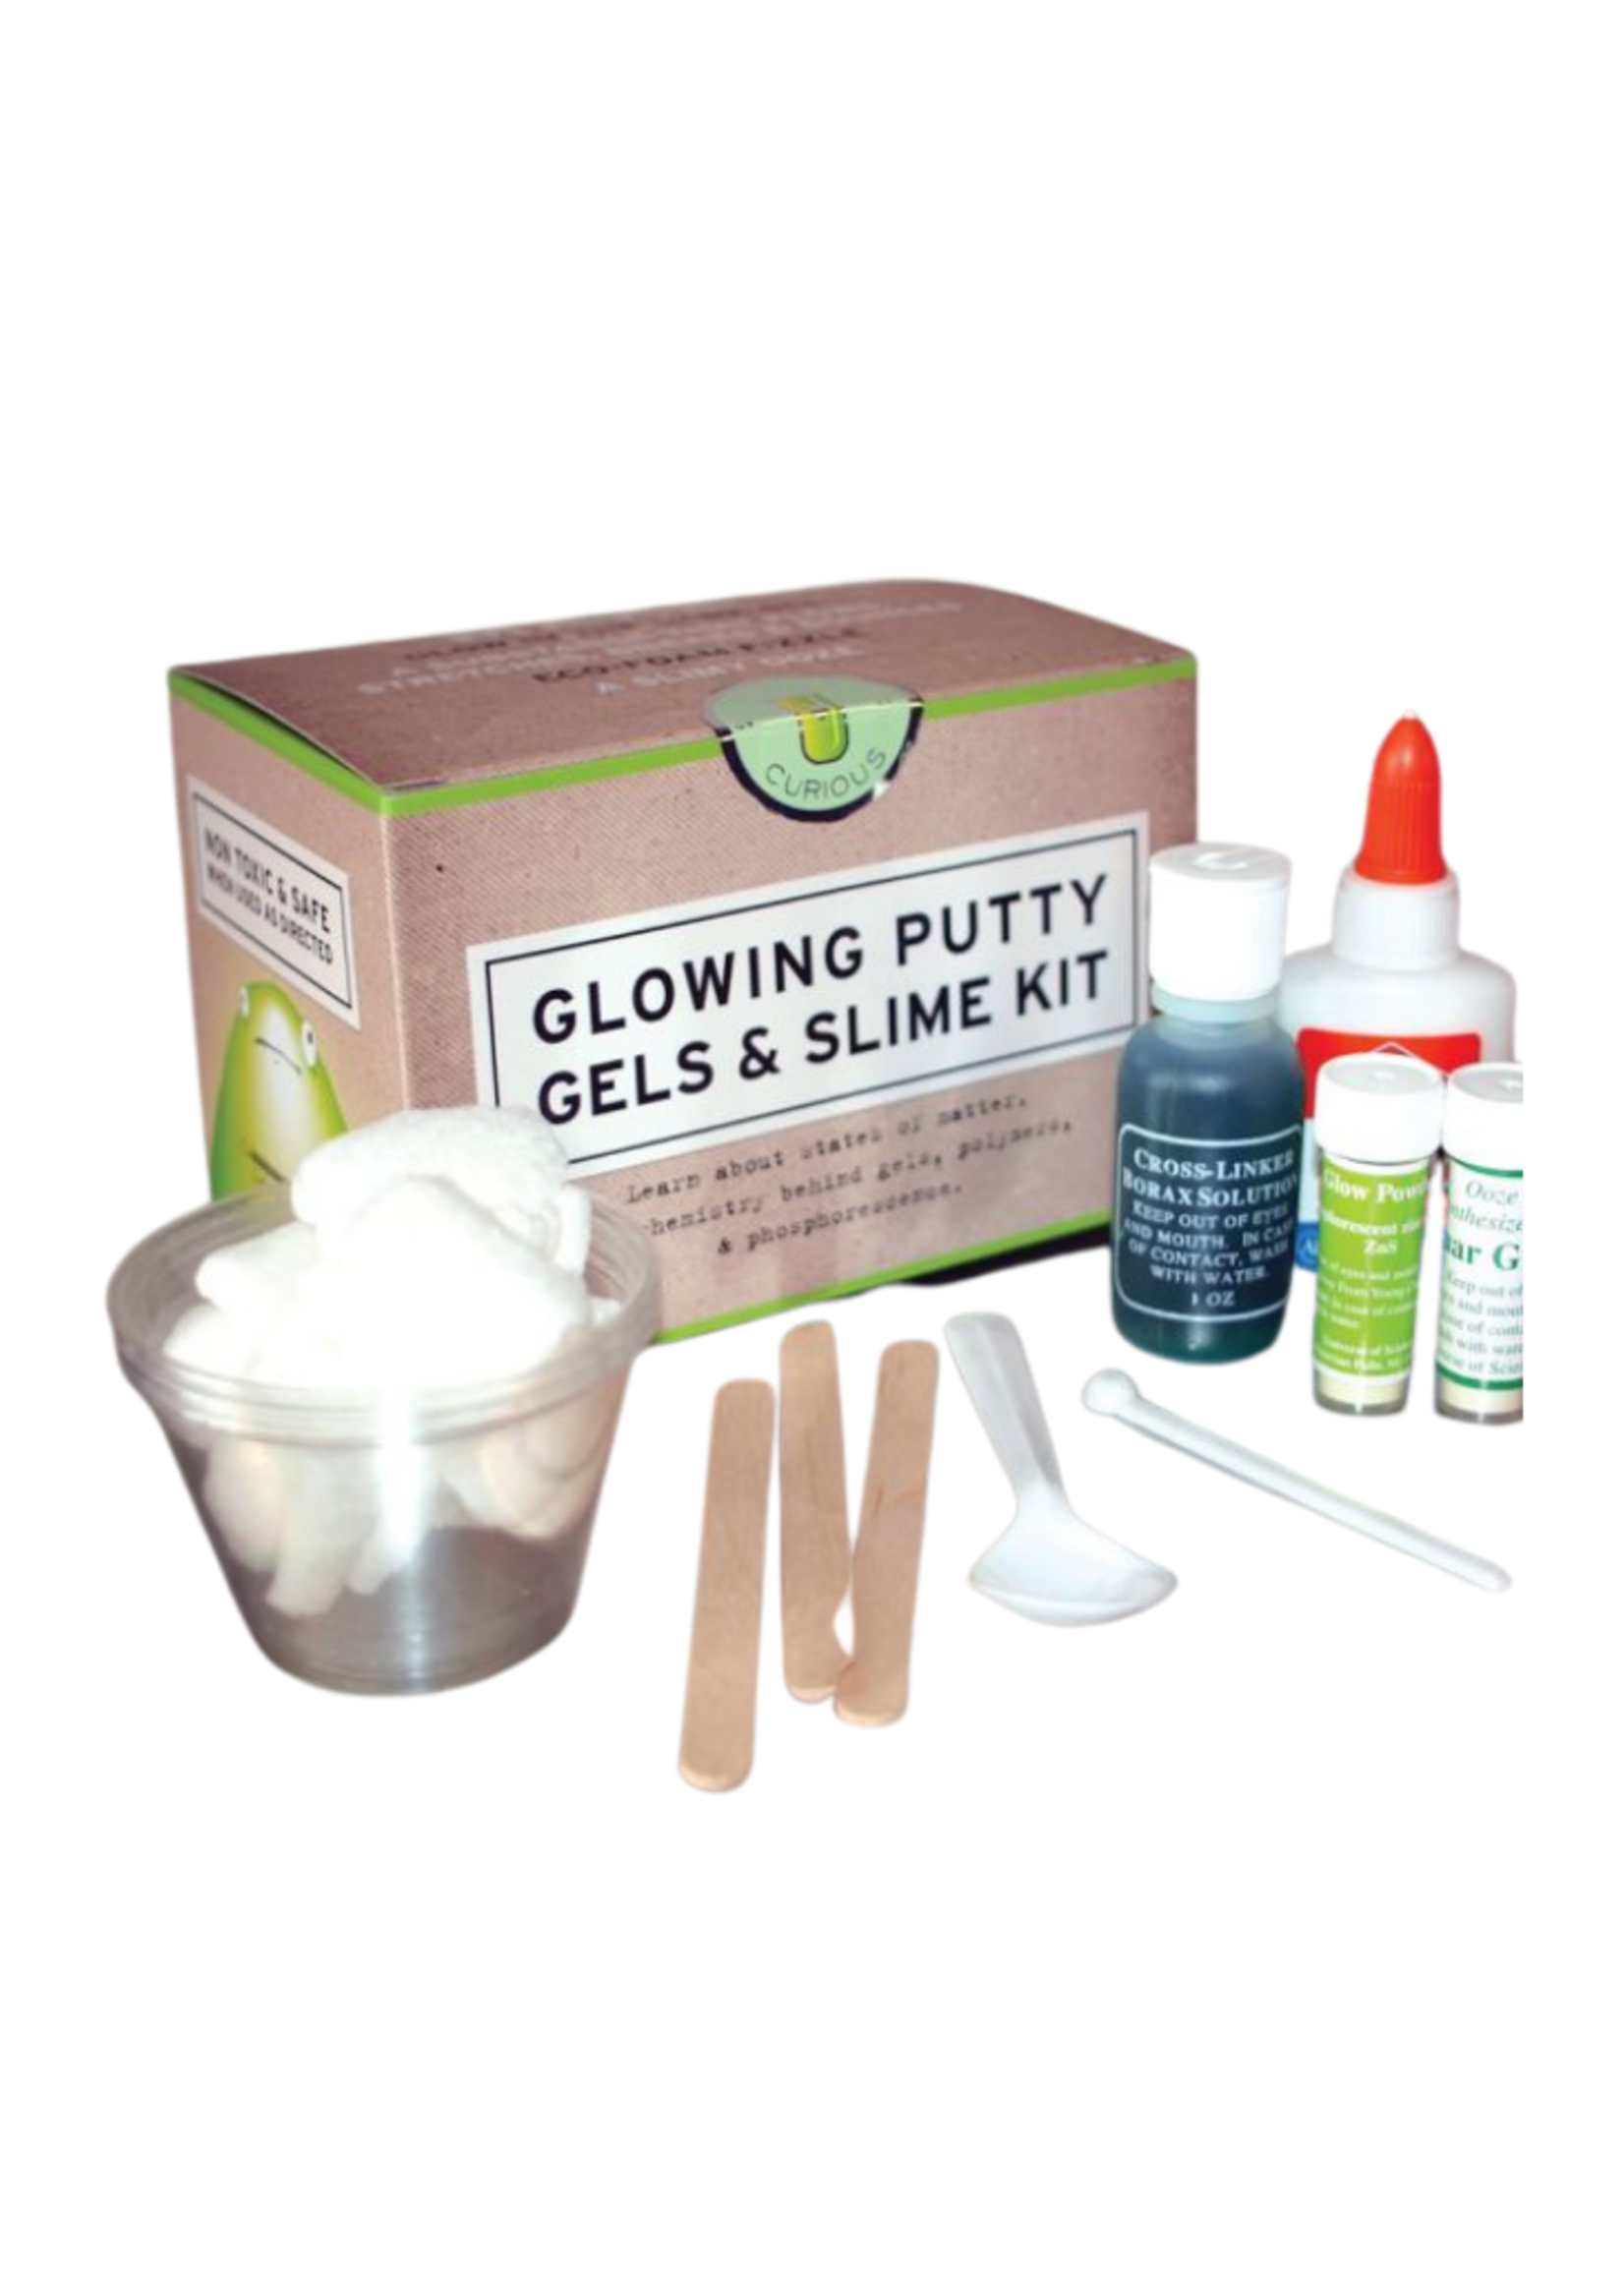 Copernicus Toys Glowing Putty, Gels & Slime Kit